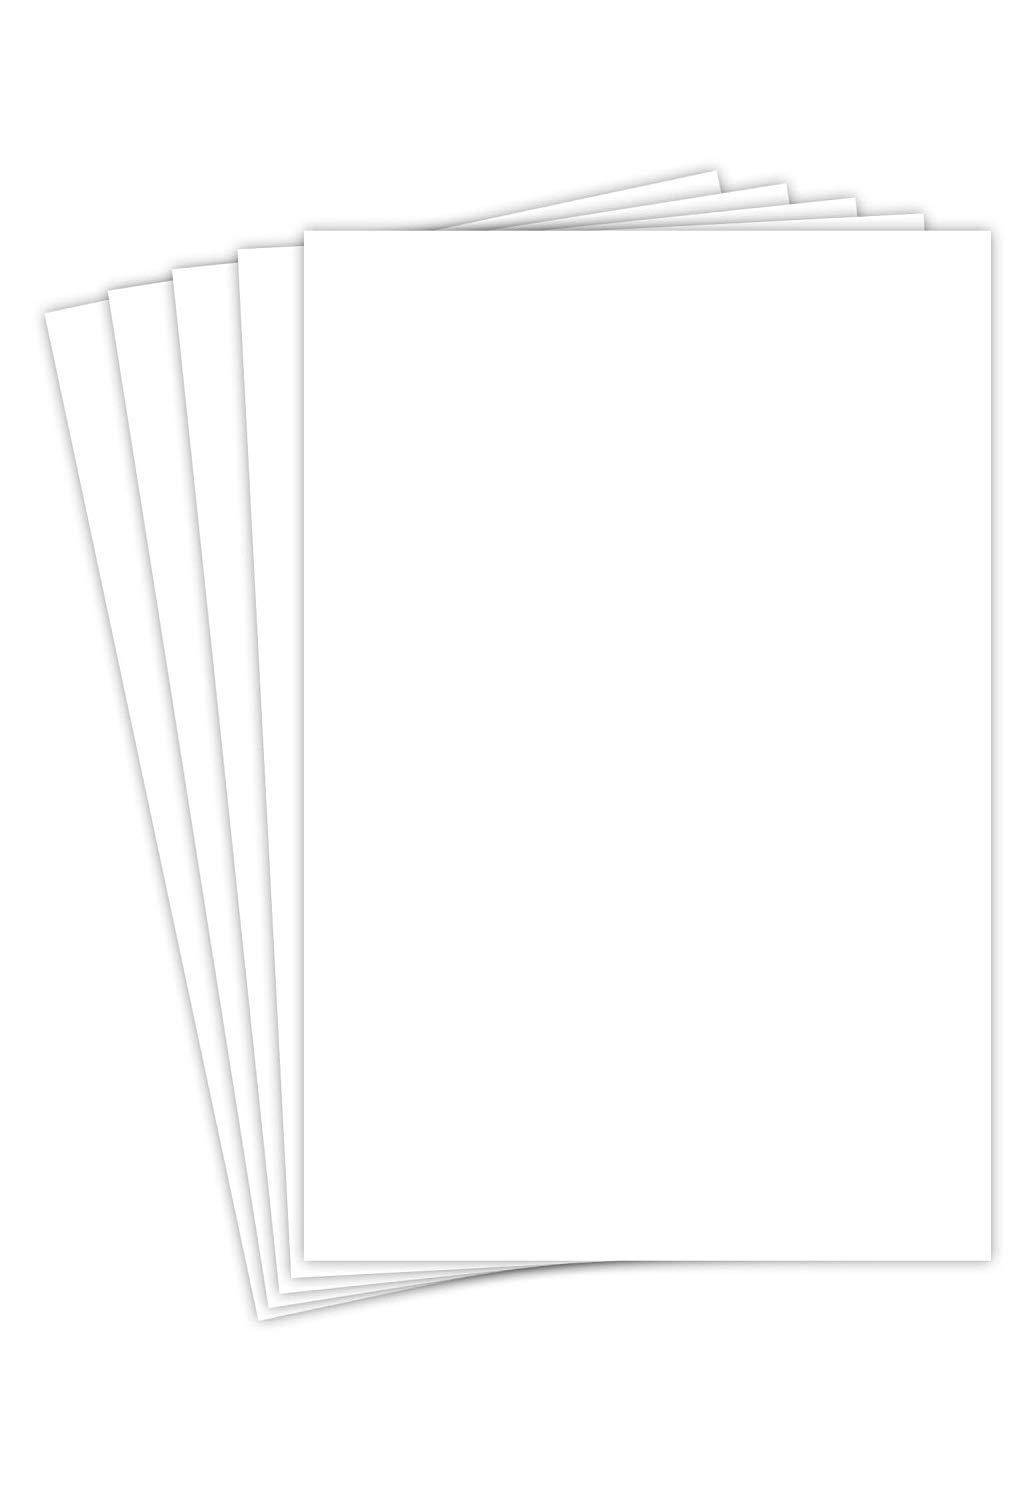 Heavyweight White Smooth Cover Stock - 110lb. / 297 gsm - Size 12'' X 18'' - 50 Per Pack